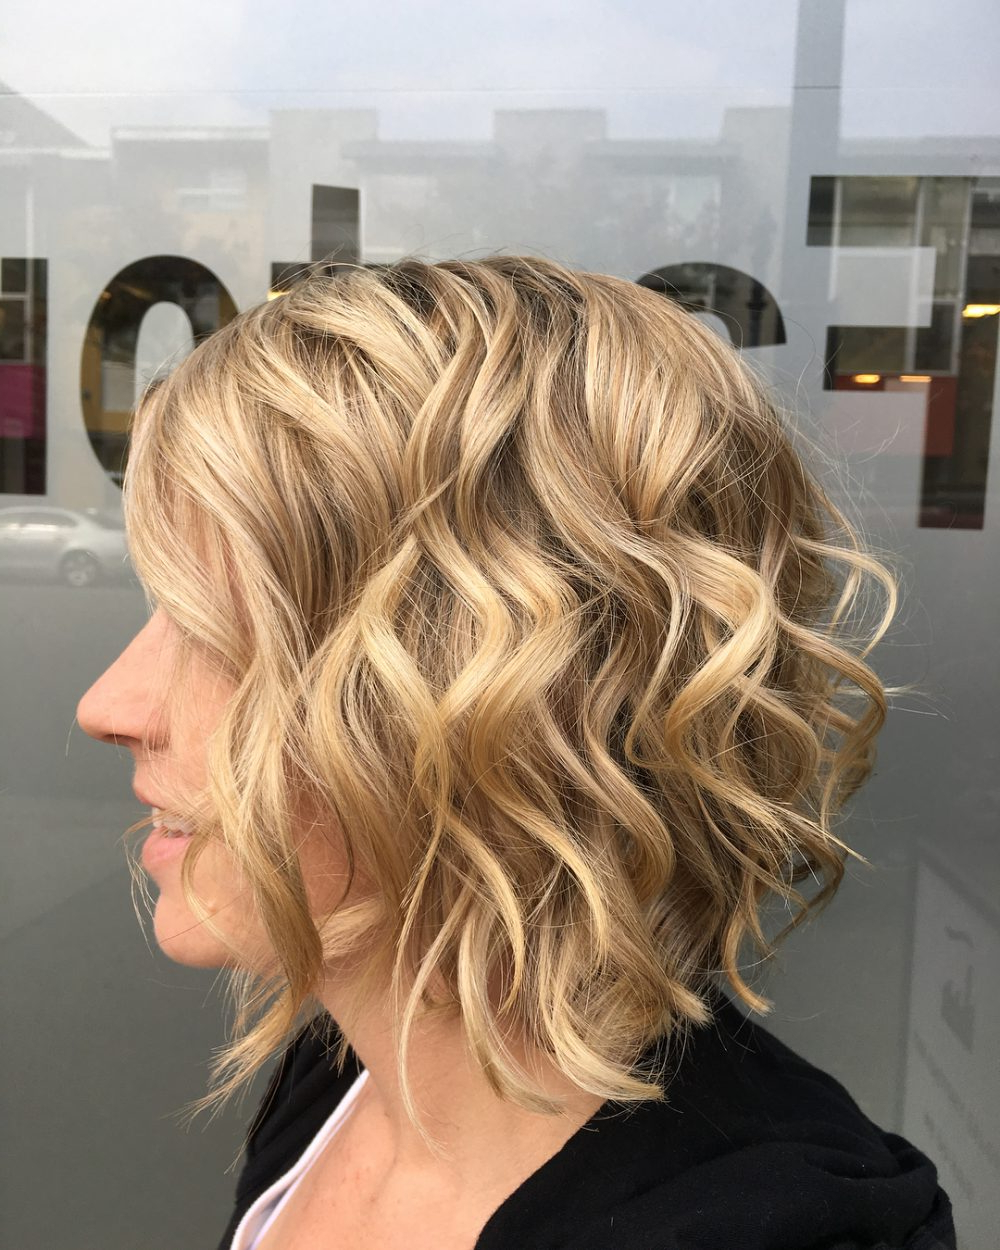 43 Greatest Wavy Bob Hairstyles – Short, Medium And Long In 2018 For Short Wavy Inverted Bob Hairstyles (Gallery 9 of 20)